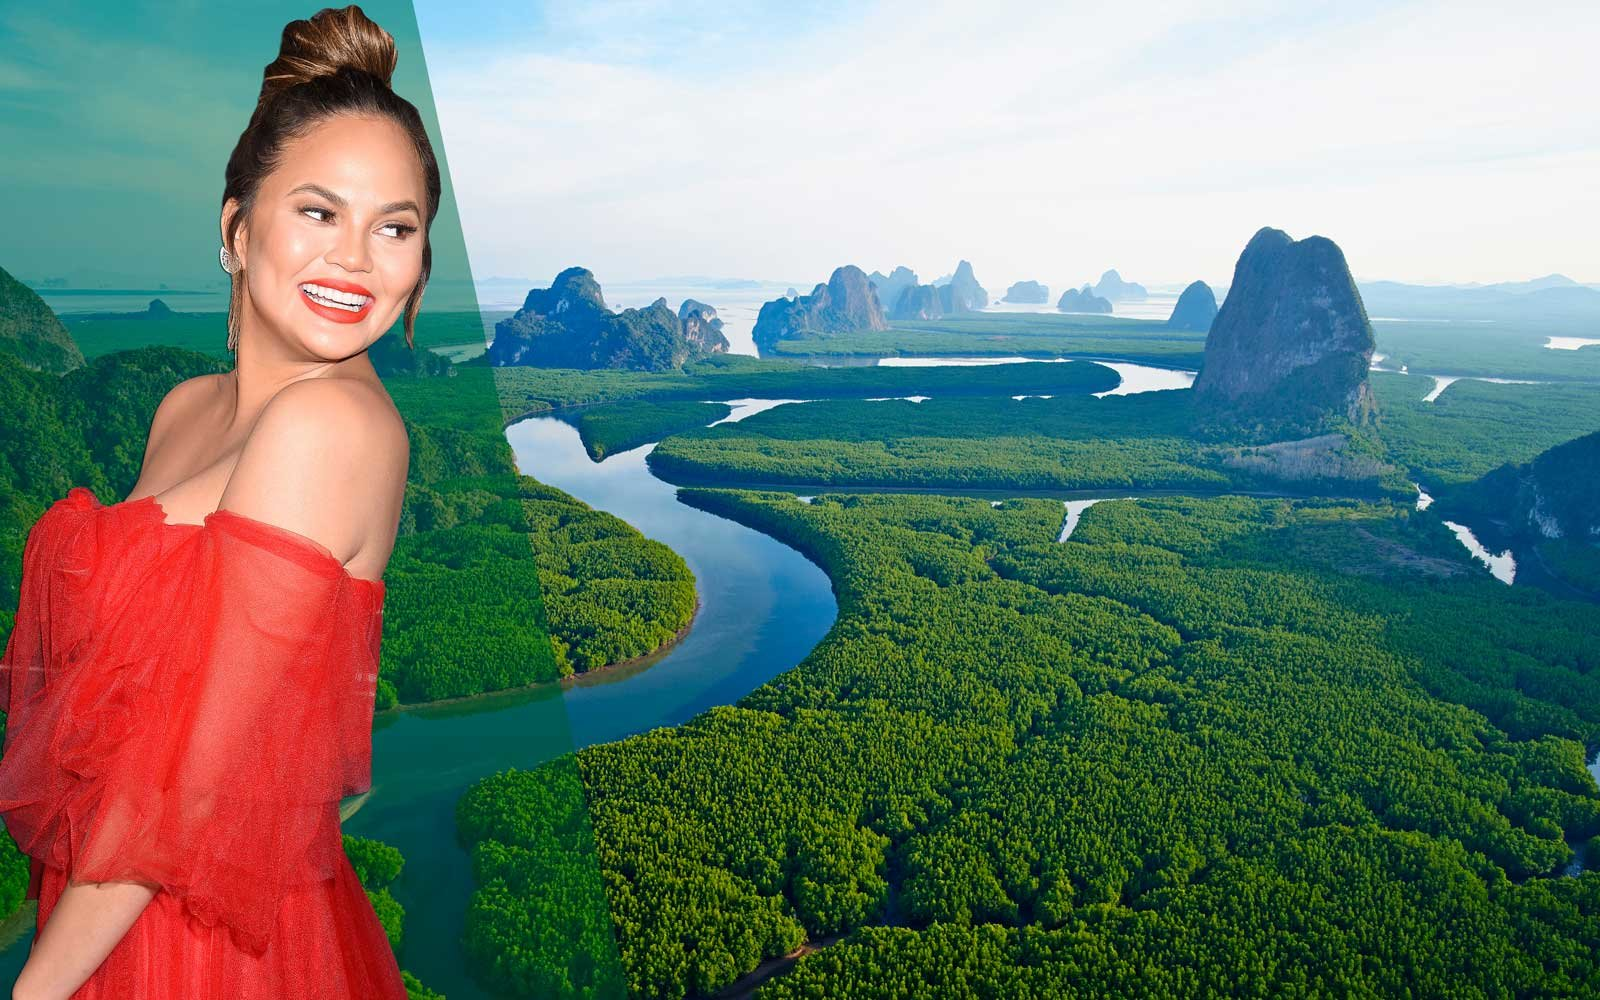 Chrissy Teigen superimposed on Thailand landscape